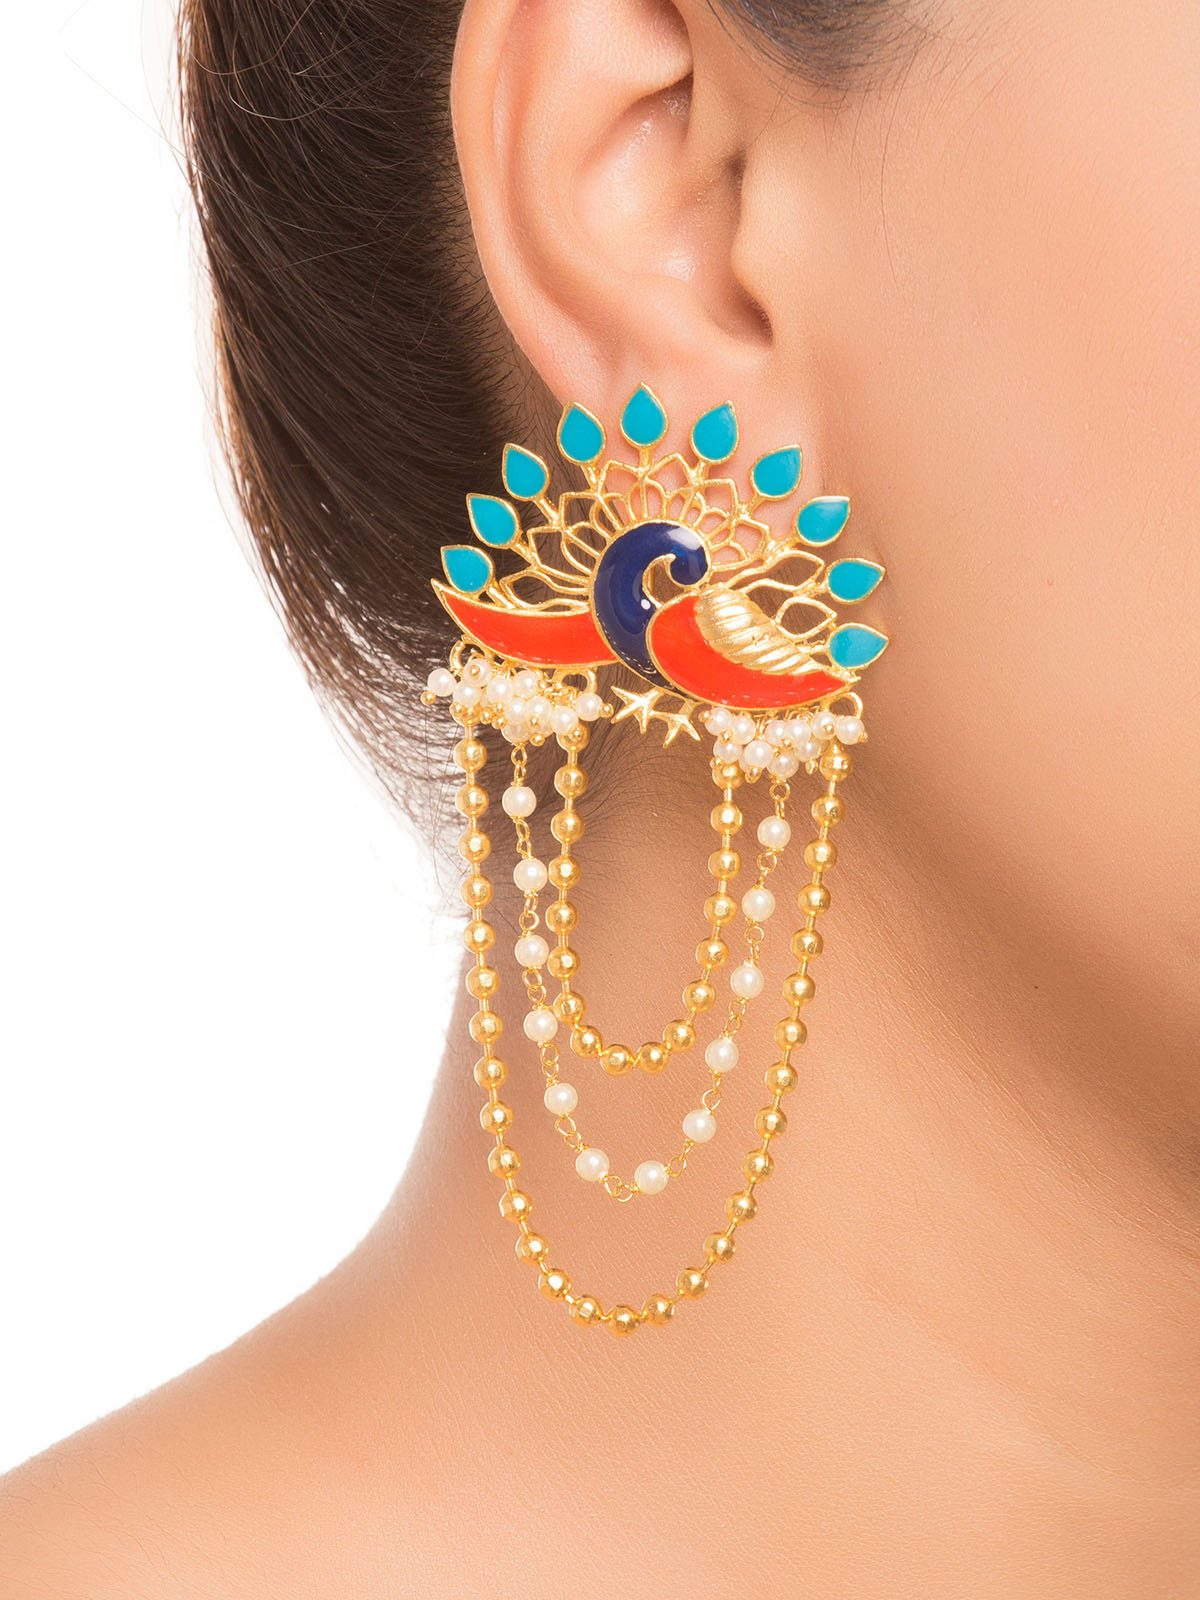 turquoise-blue-and-red-peacock-dangler-earrings_danglers_turquoise-blue-red_151807911811-40016adce75b39399f75411345e6e696